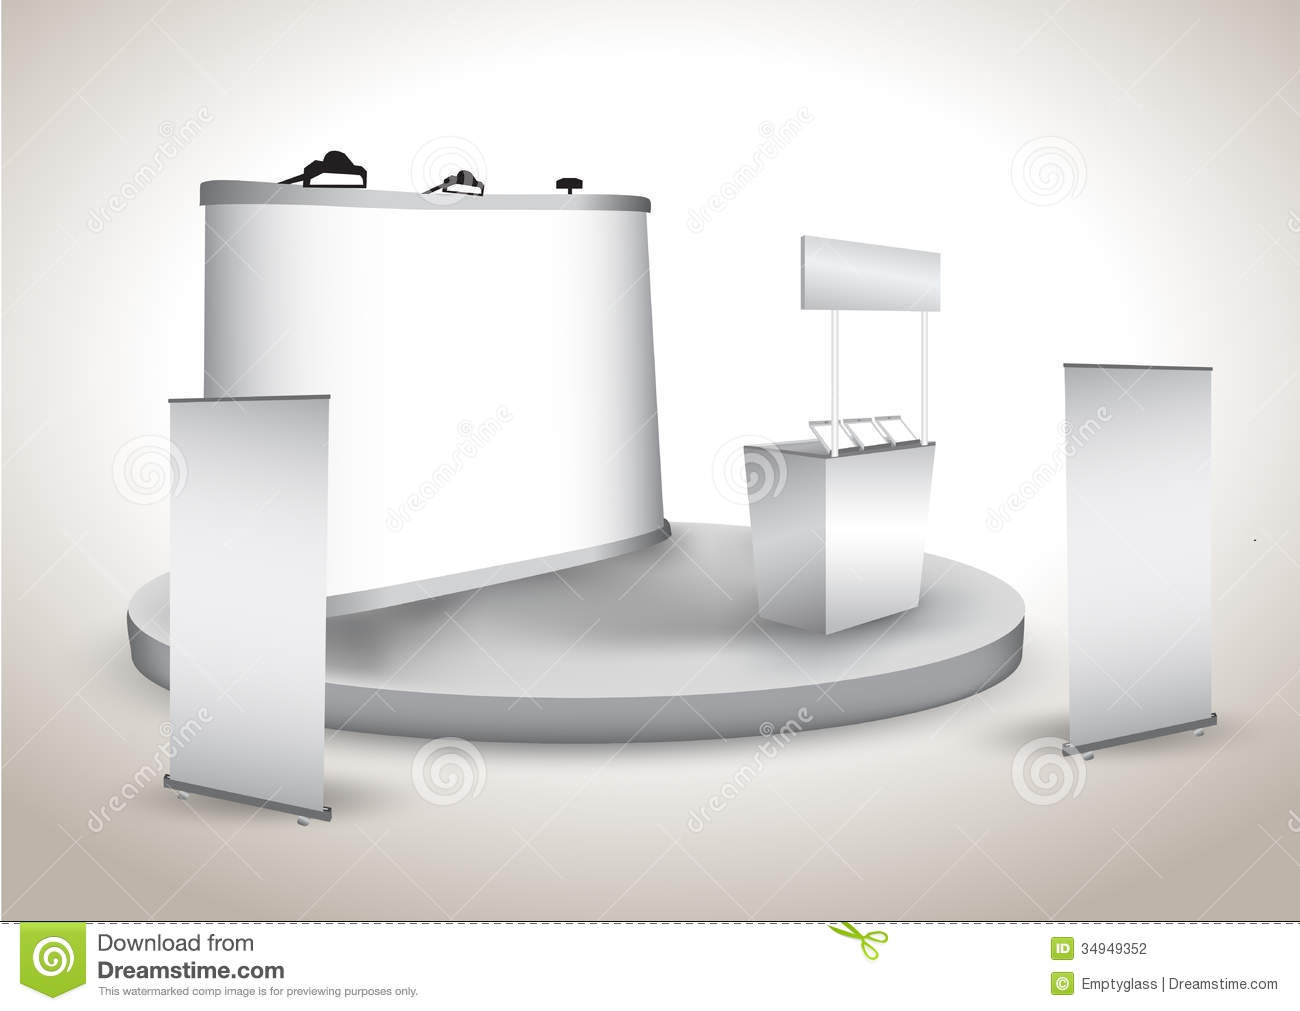 Trade Show Booth Backdrop : Booth exhibition display with backdrop stock photography